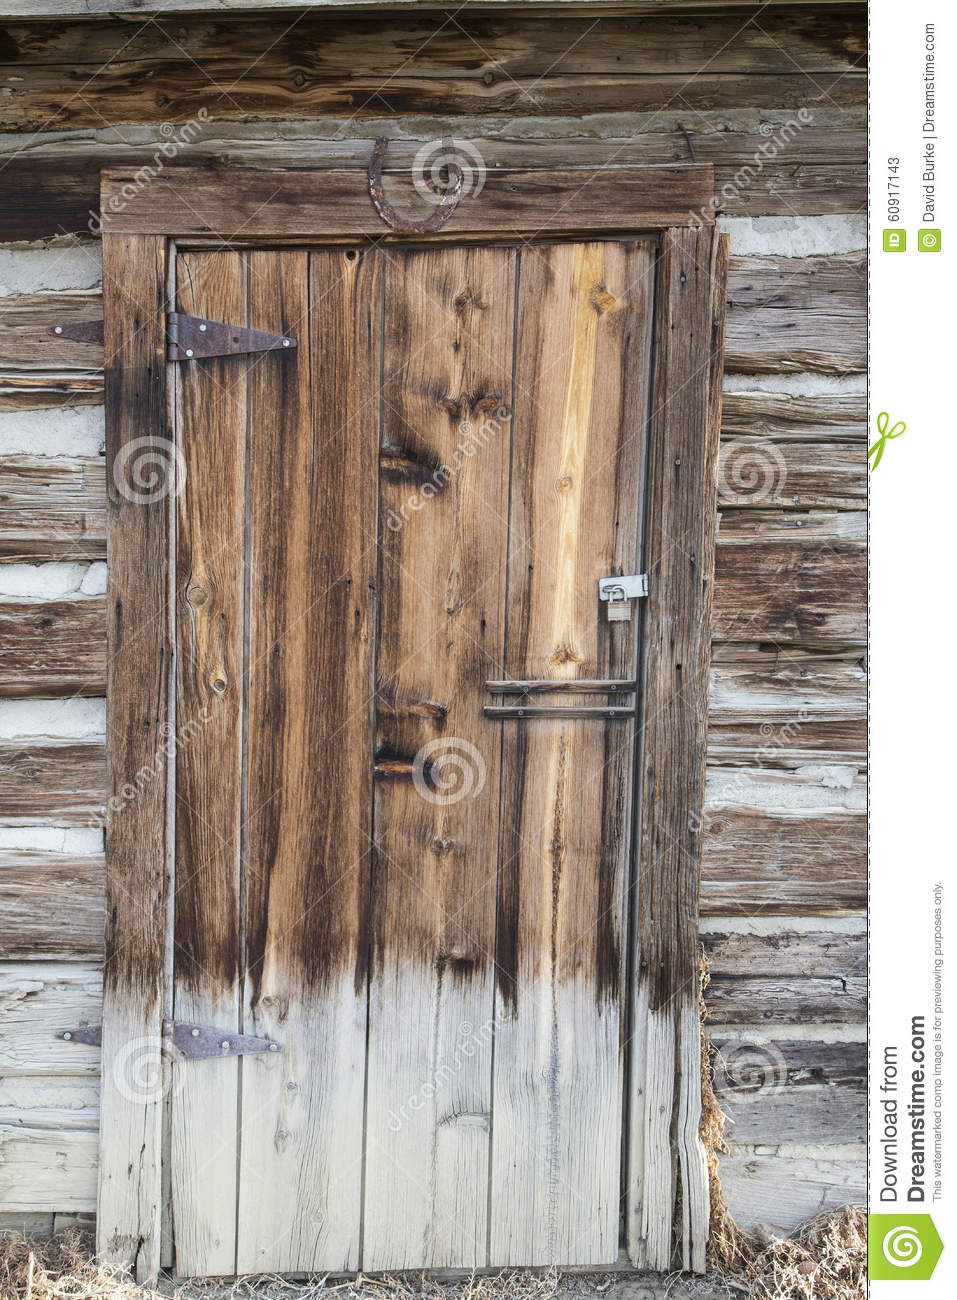 Vintage Wooden Cabin Door Stock Photo Image 60917143